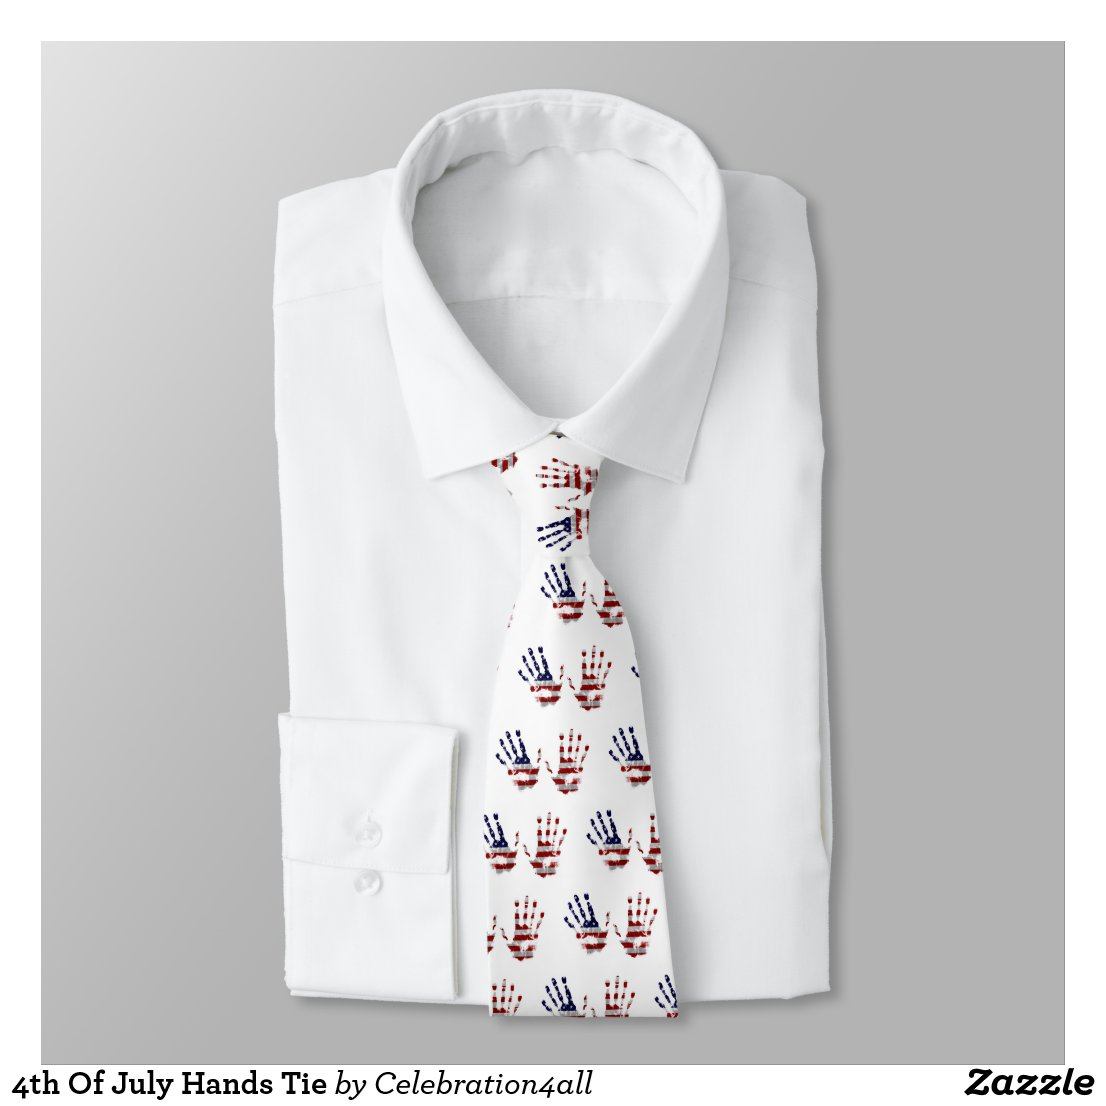 4th Of July Hands Tie